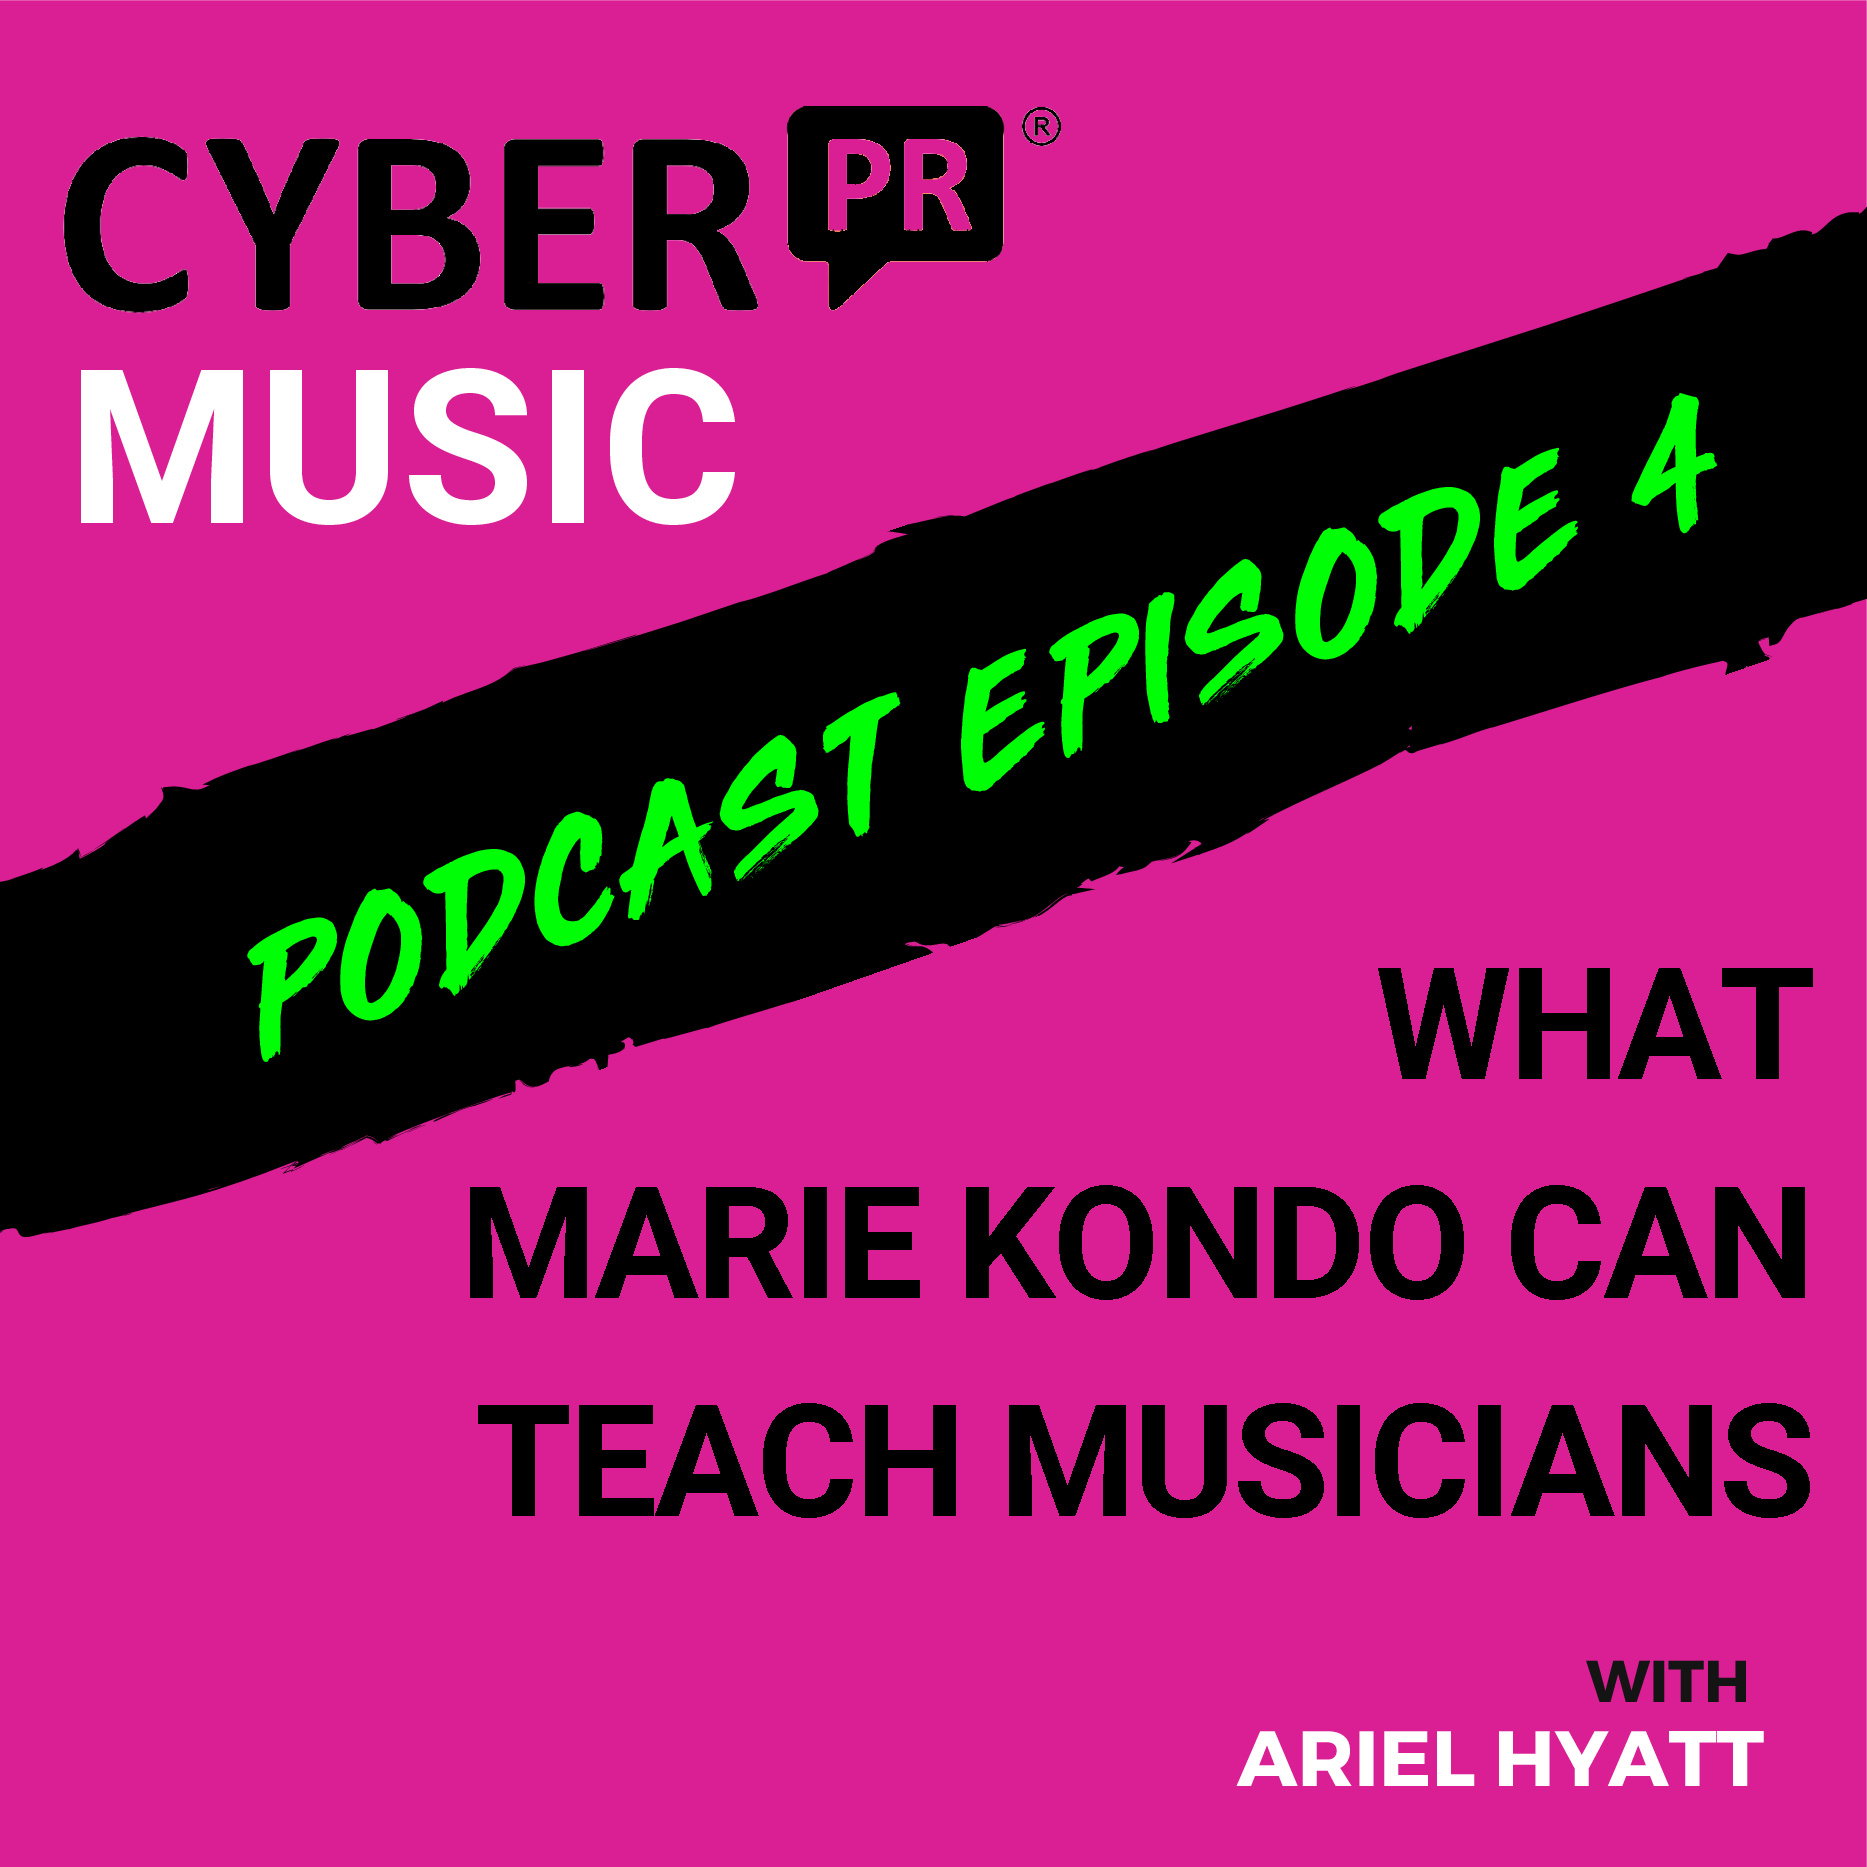 The Cyber PR Music Podcast EP 4: Lessons from Marie Kondo